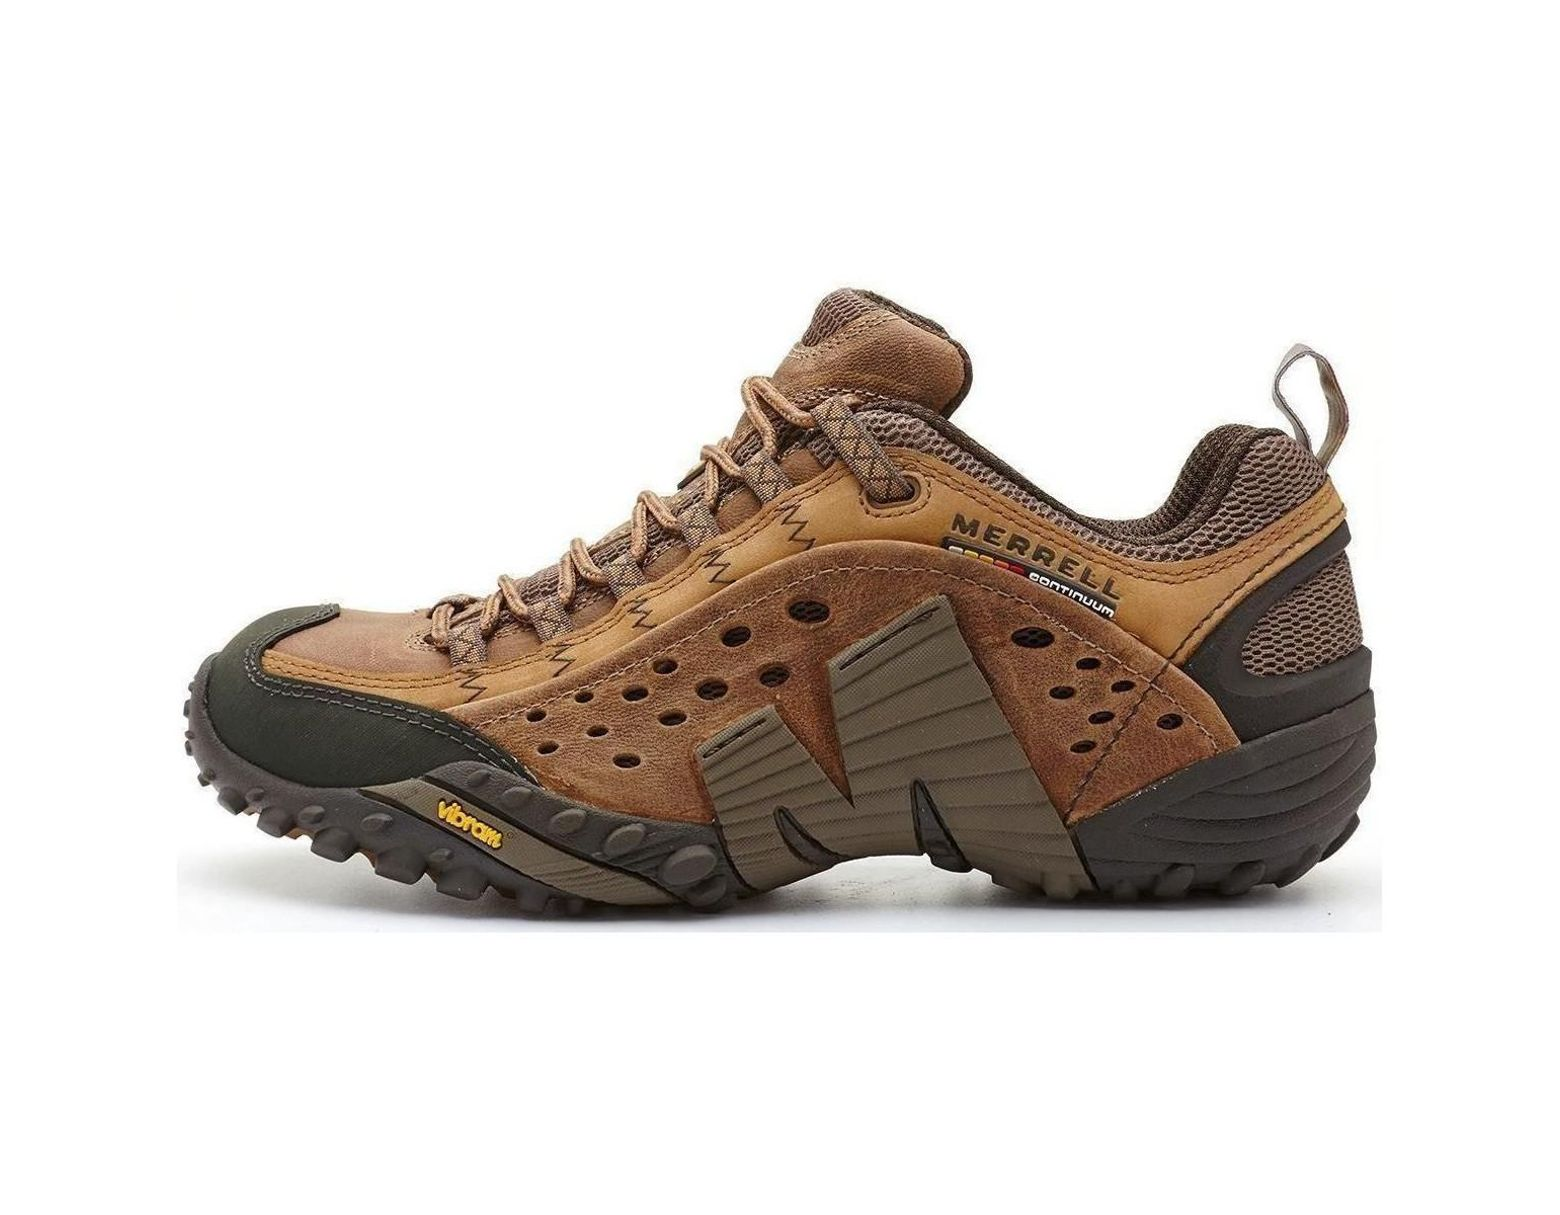 fe9adc70c23f0 Merrell Intercept Hiking Shoes In Moth Brown J73705 Men's Walking Boots In  Brown in Brown for Men - Lyst